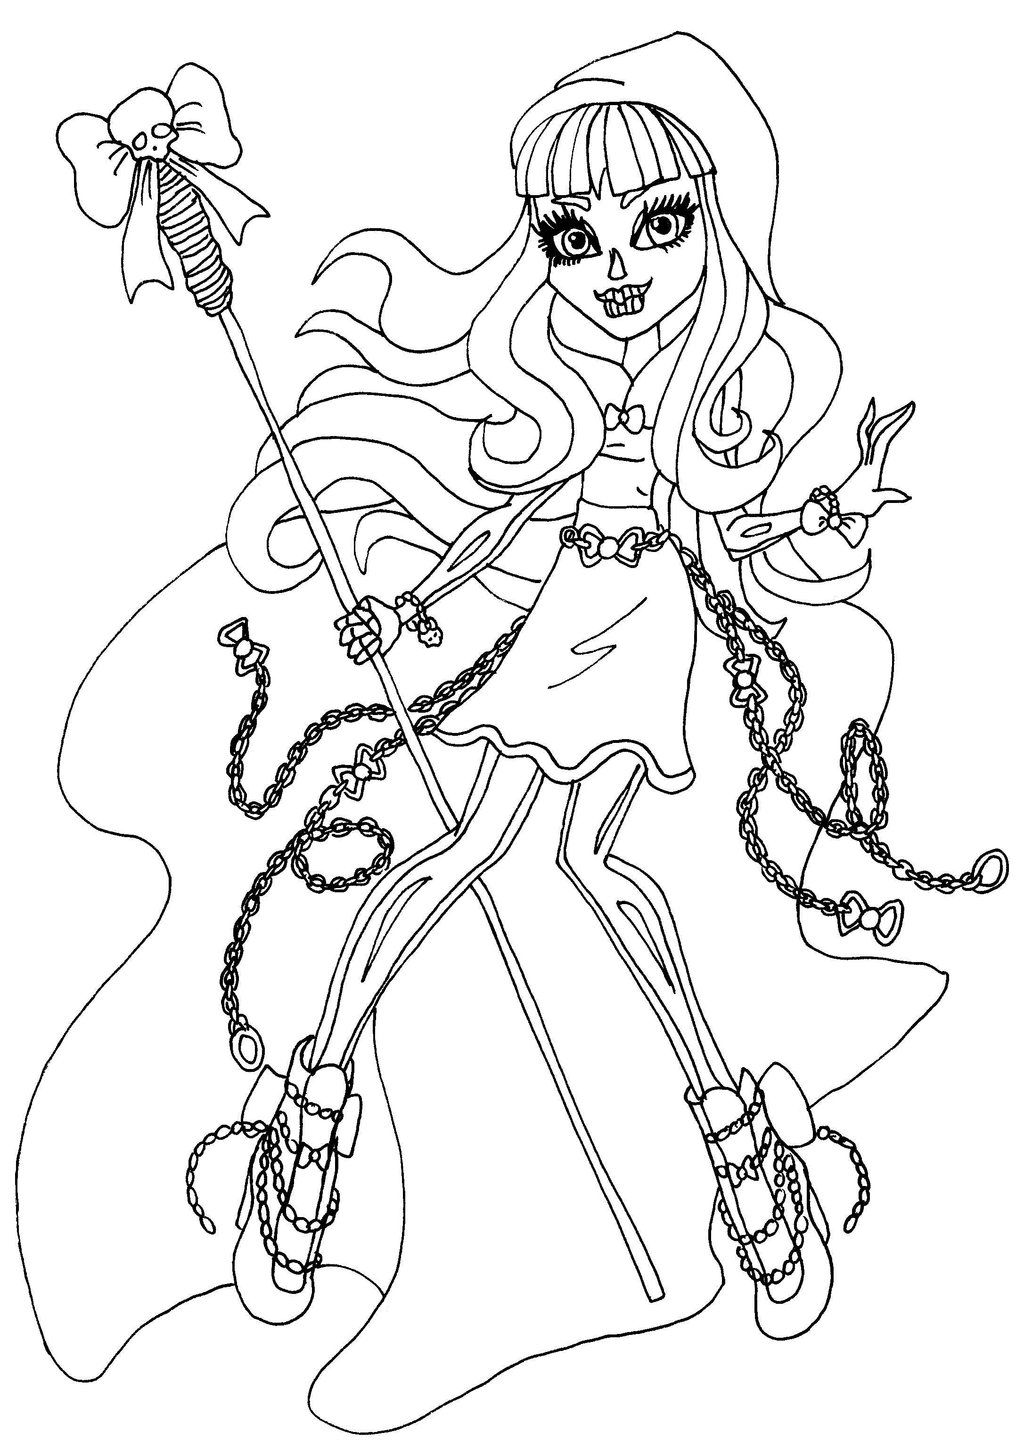 13 monster high coloring pages printable | Print Color Craft